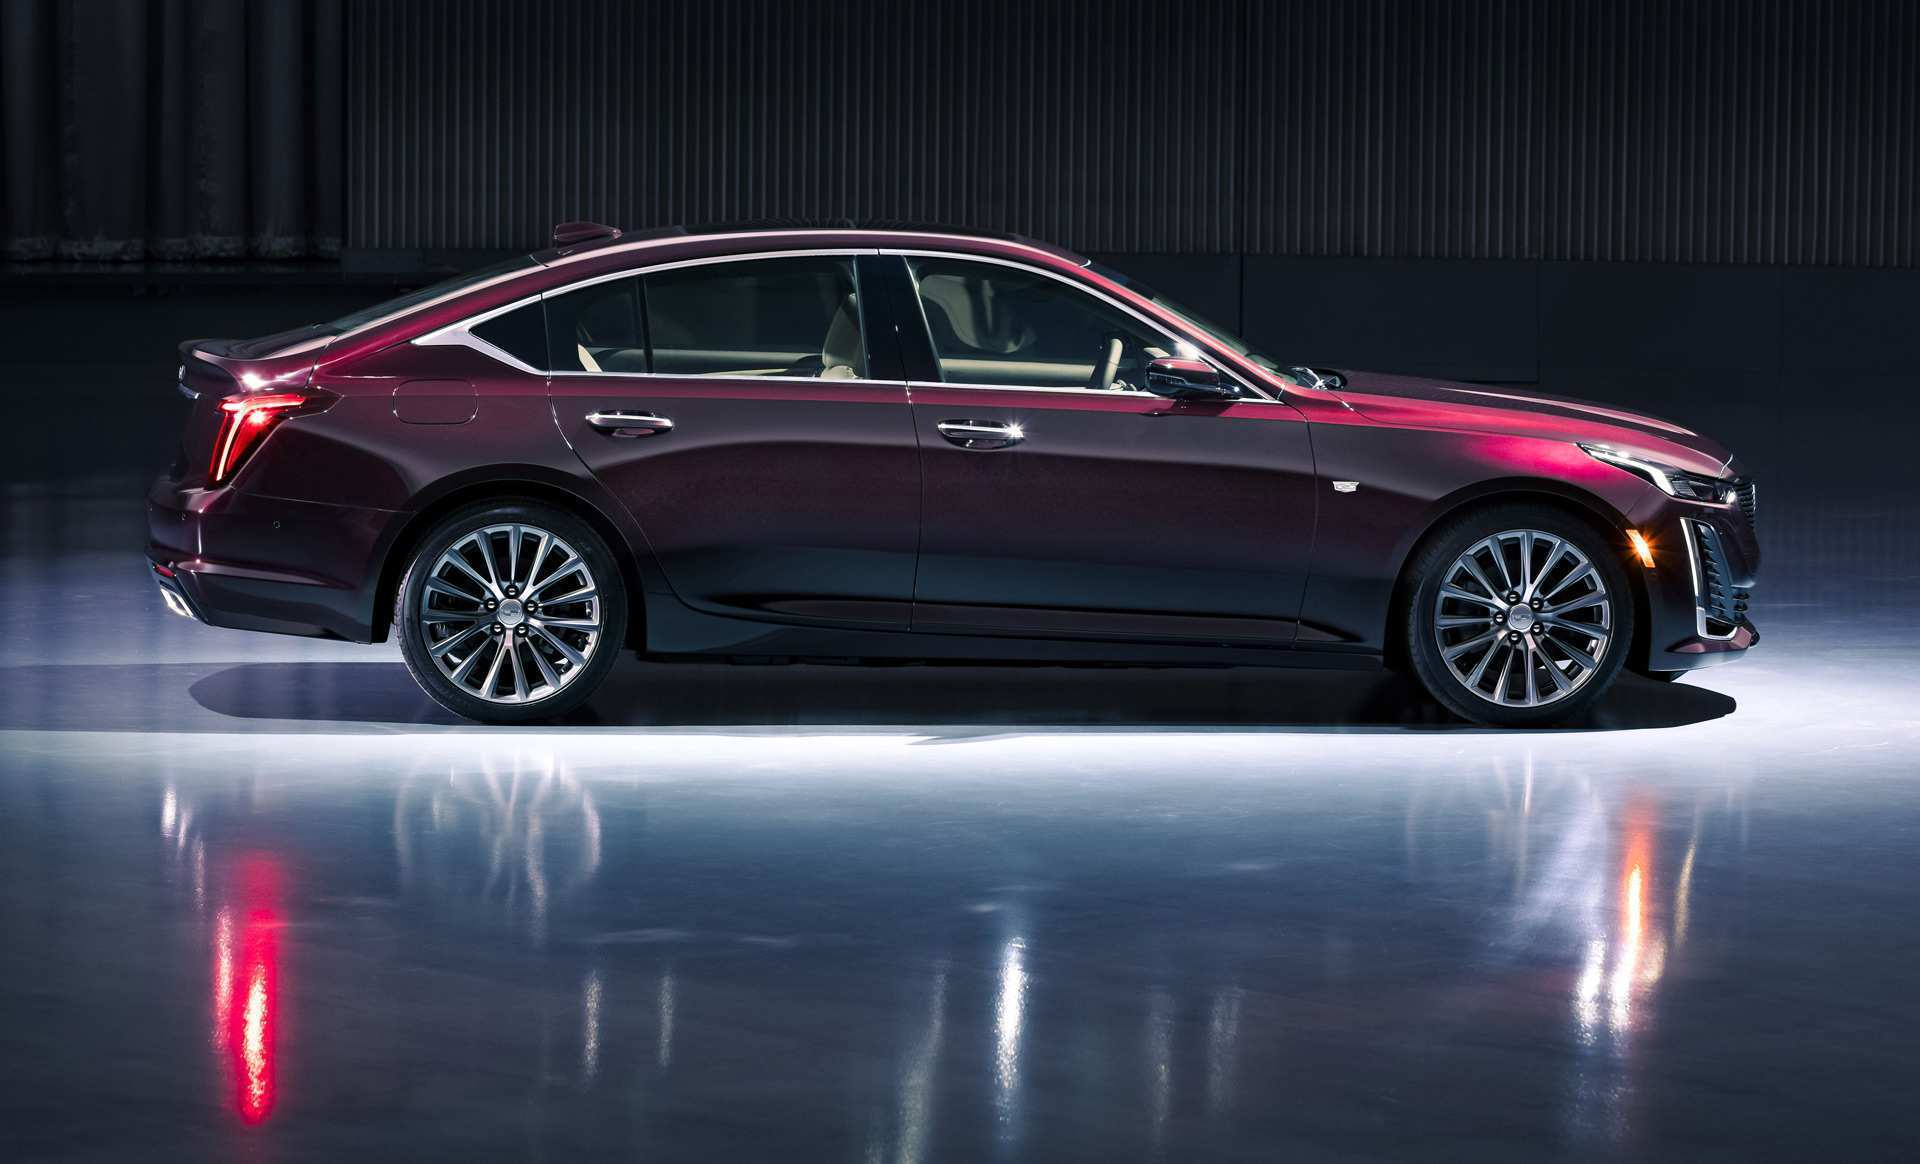 69 Best Review Cadillac 2019 Ct5 Overview And Price Wallpaper by Cadillac 2019 Ct5 Overview And Price